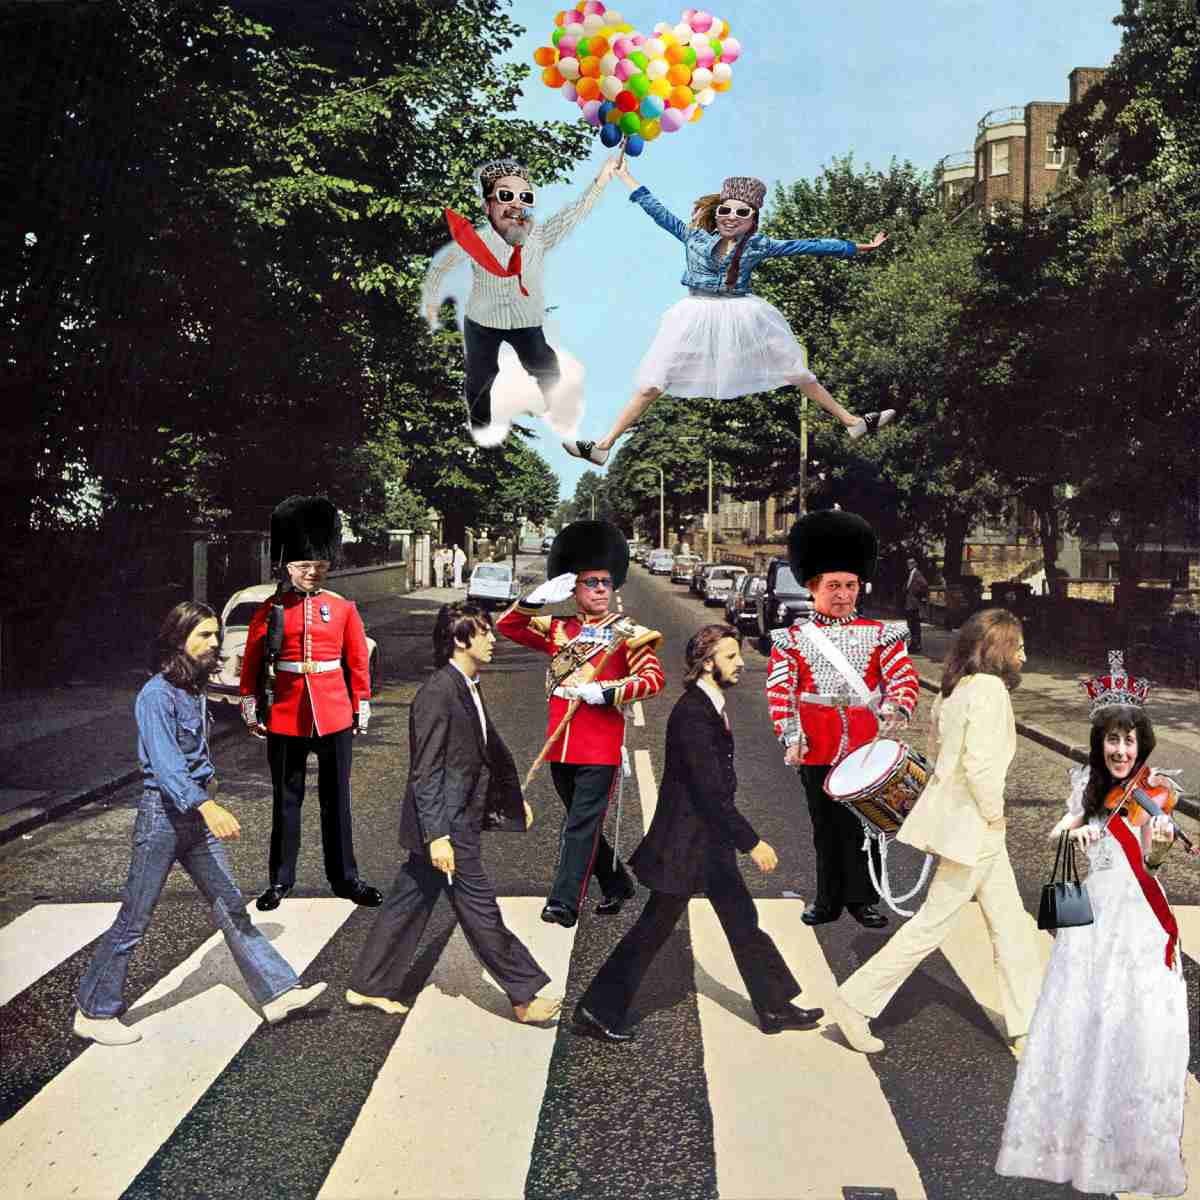 promotional image for the performance, with the featured artists photoshopped into the abbey road album art